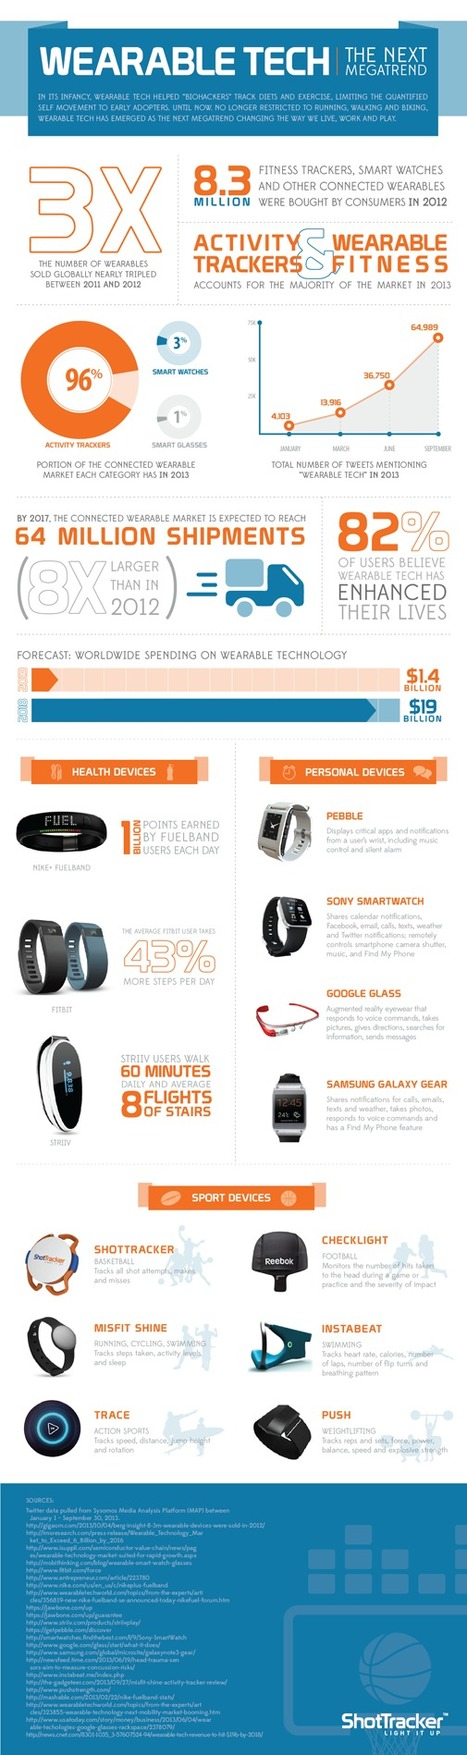 In Five Years, Shipments of Wearable Technology Will Jump 8-Fold (infographic) | Medicine in Pictures | Scoop.it